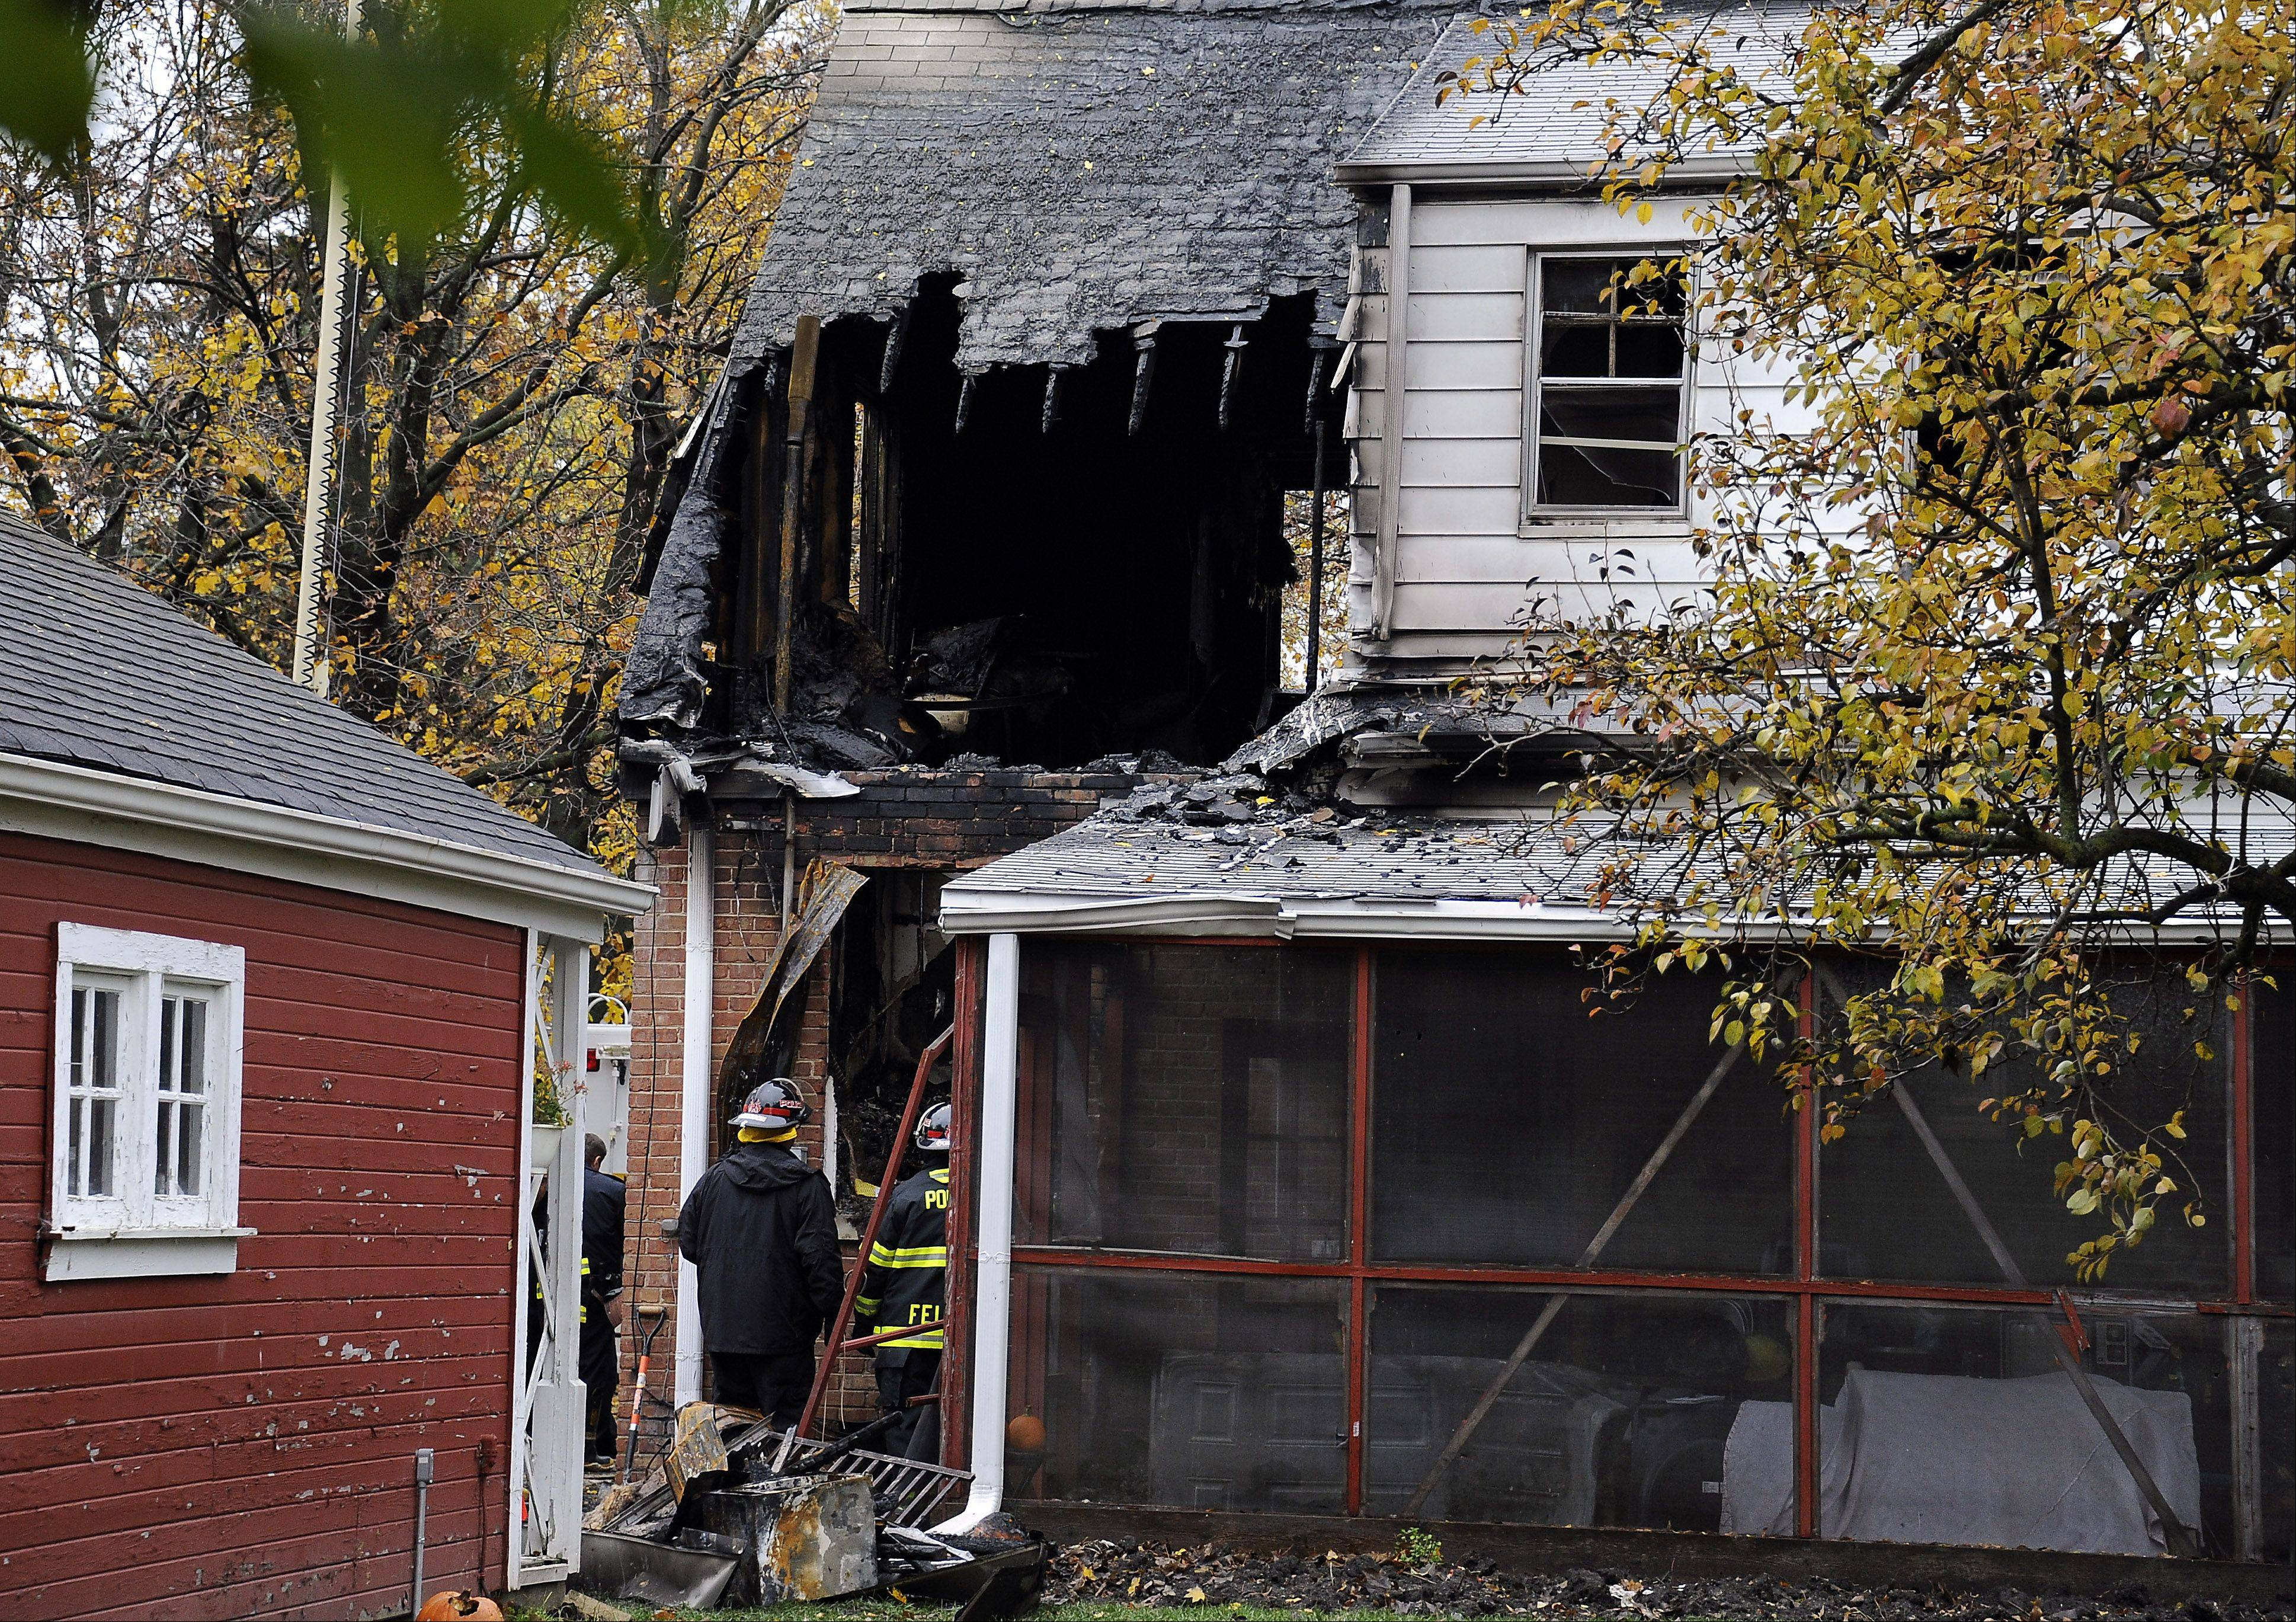 The lack of a working smoking detector in this week's fatal house fire in Arlington Heights is causing the fire department to renew its appeal that such devices be installed and properly maintained.